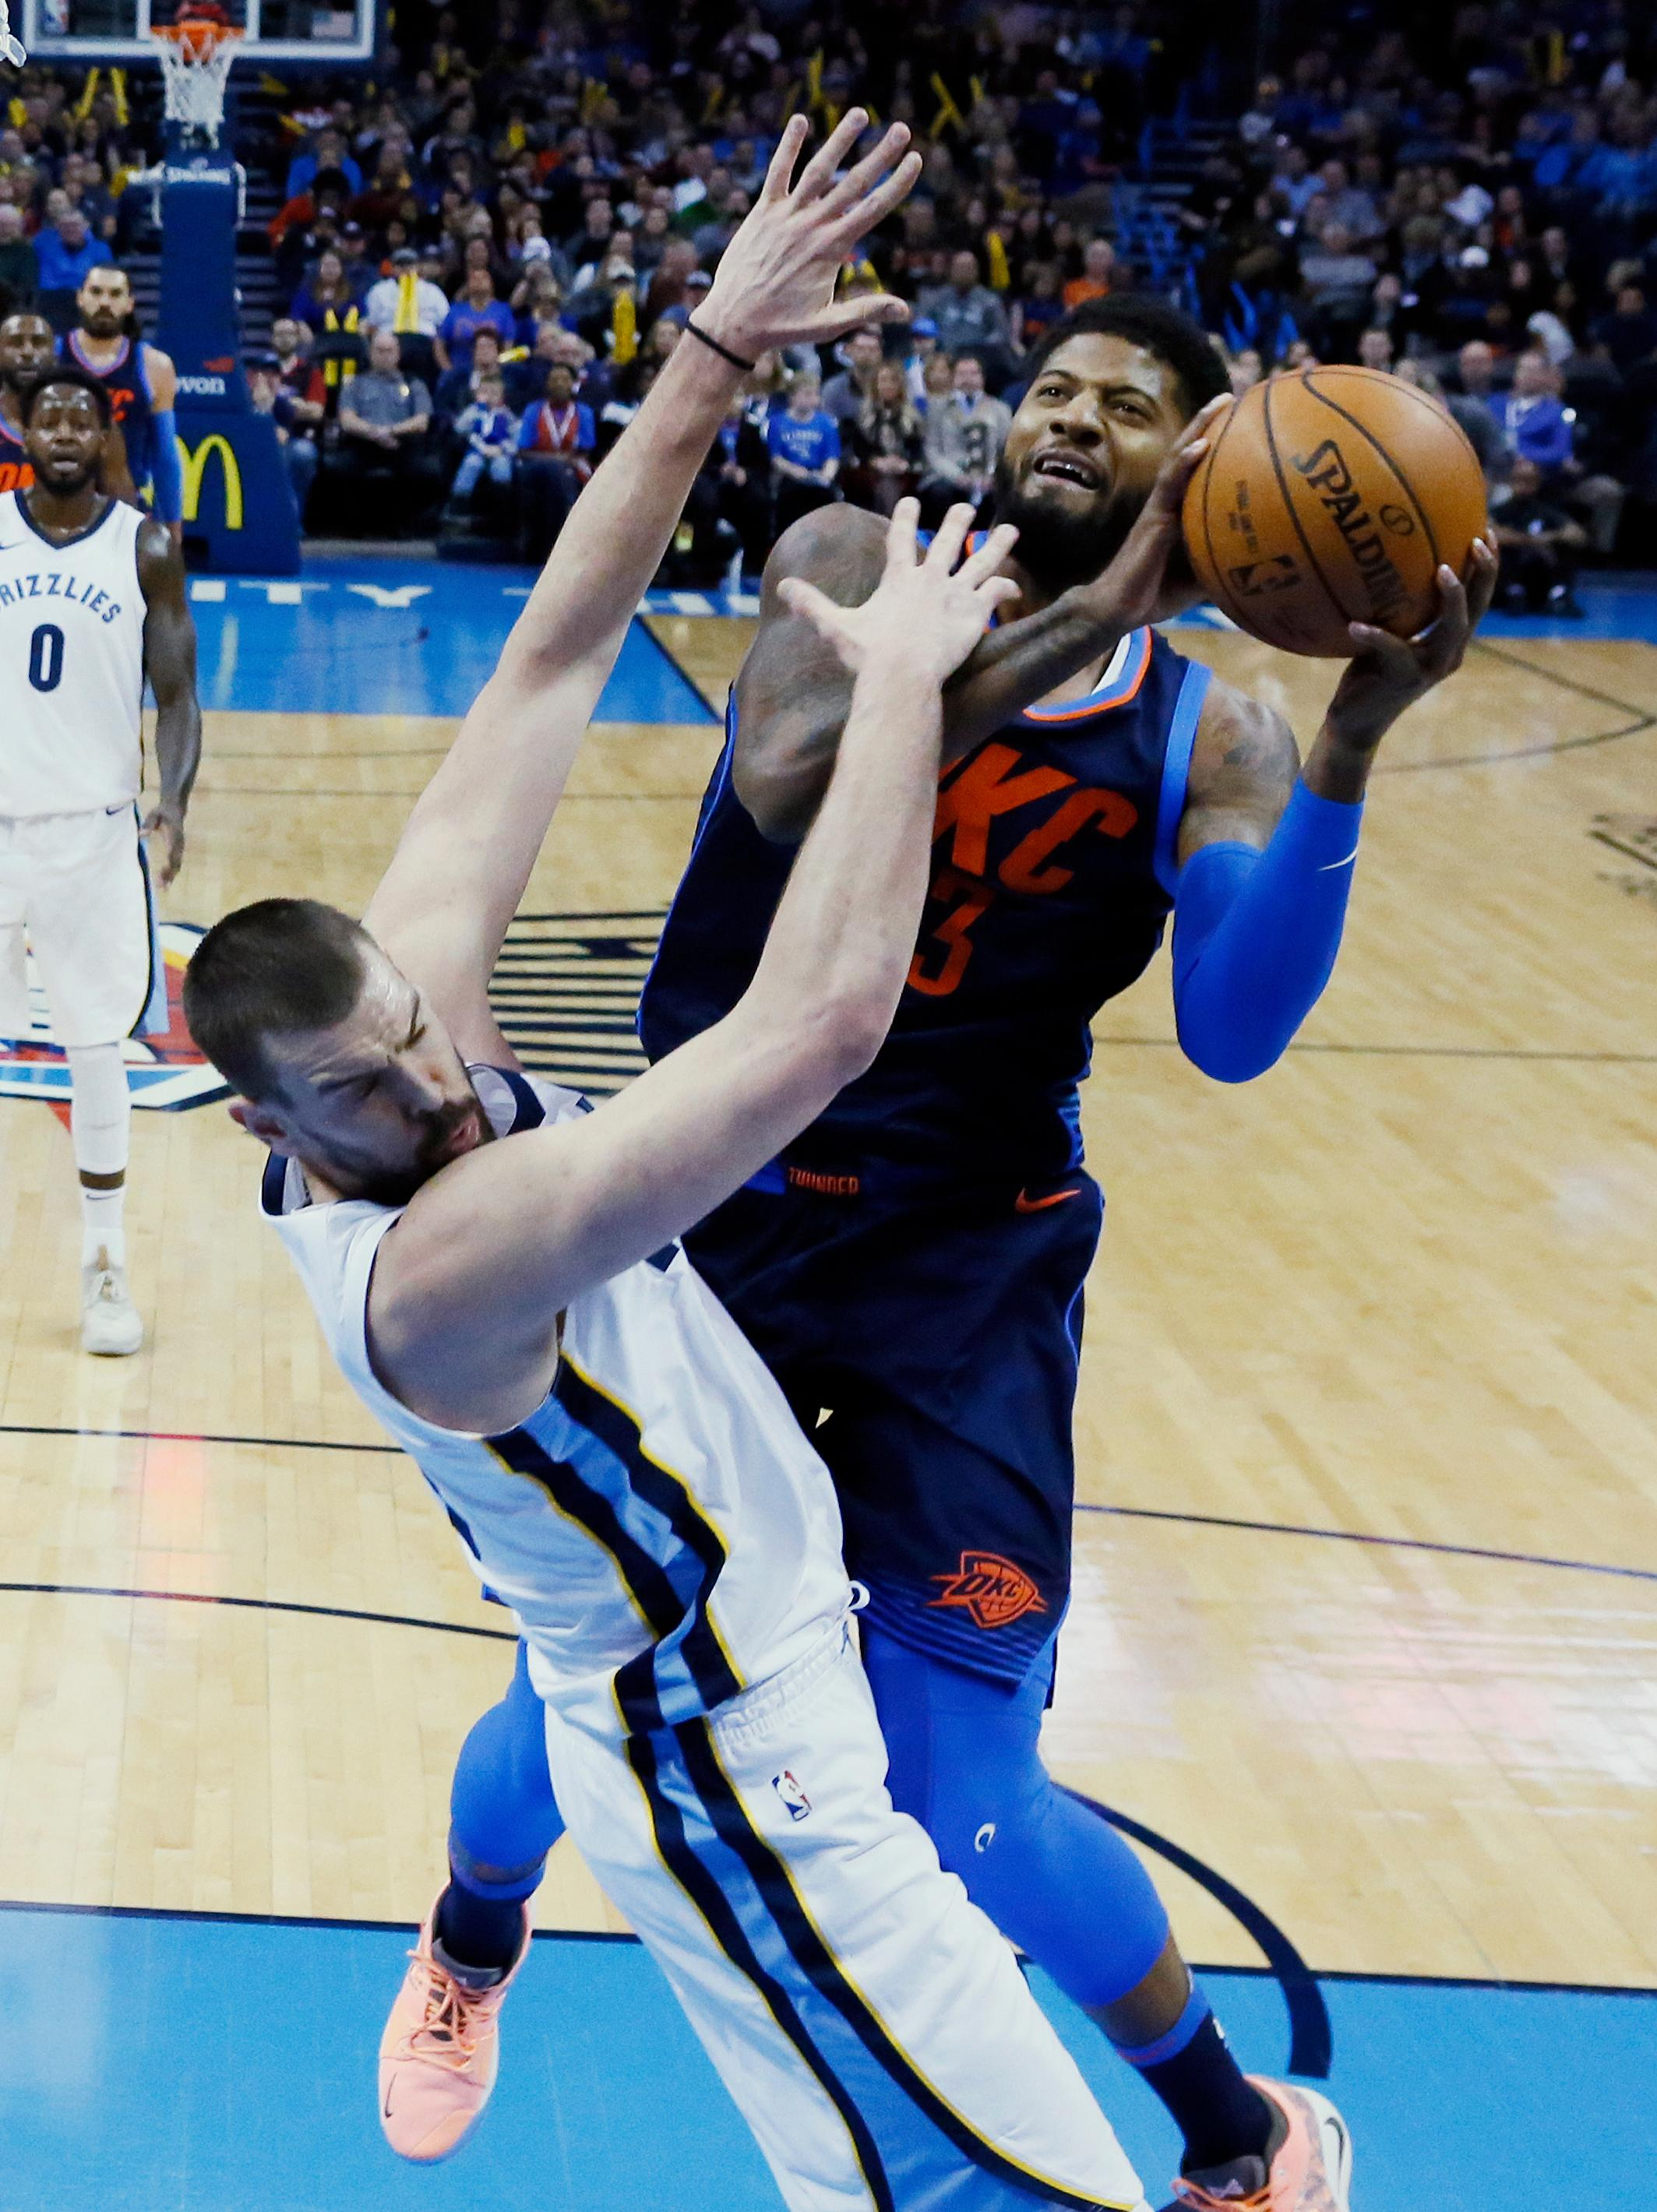 Oklahoma City Thunder forward Paul George, right, shoots over Memphis Grizzlies center Marc Gasol, left, in the first half of an NBA basketball game in Oklahoma City, Sunday, Feb. 11, 2018. (AP Photo/Sue Ogrocki)